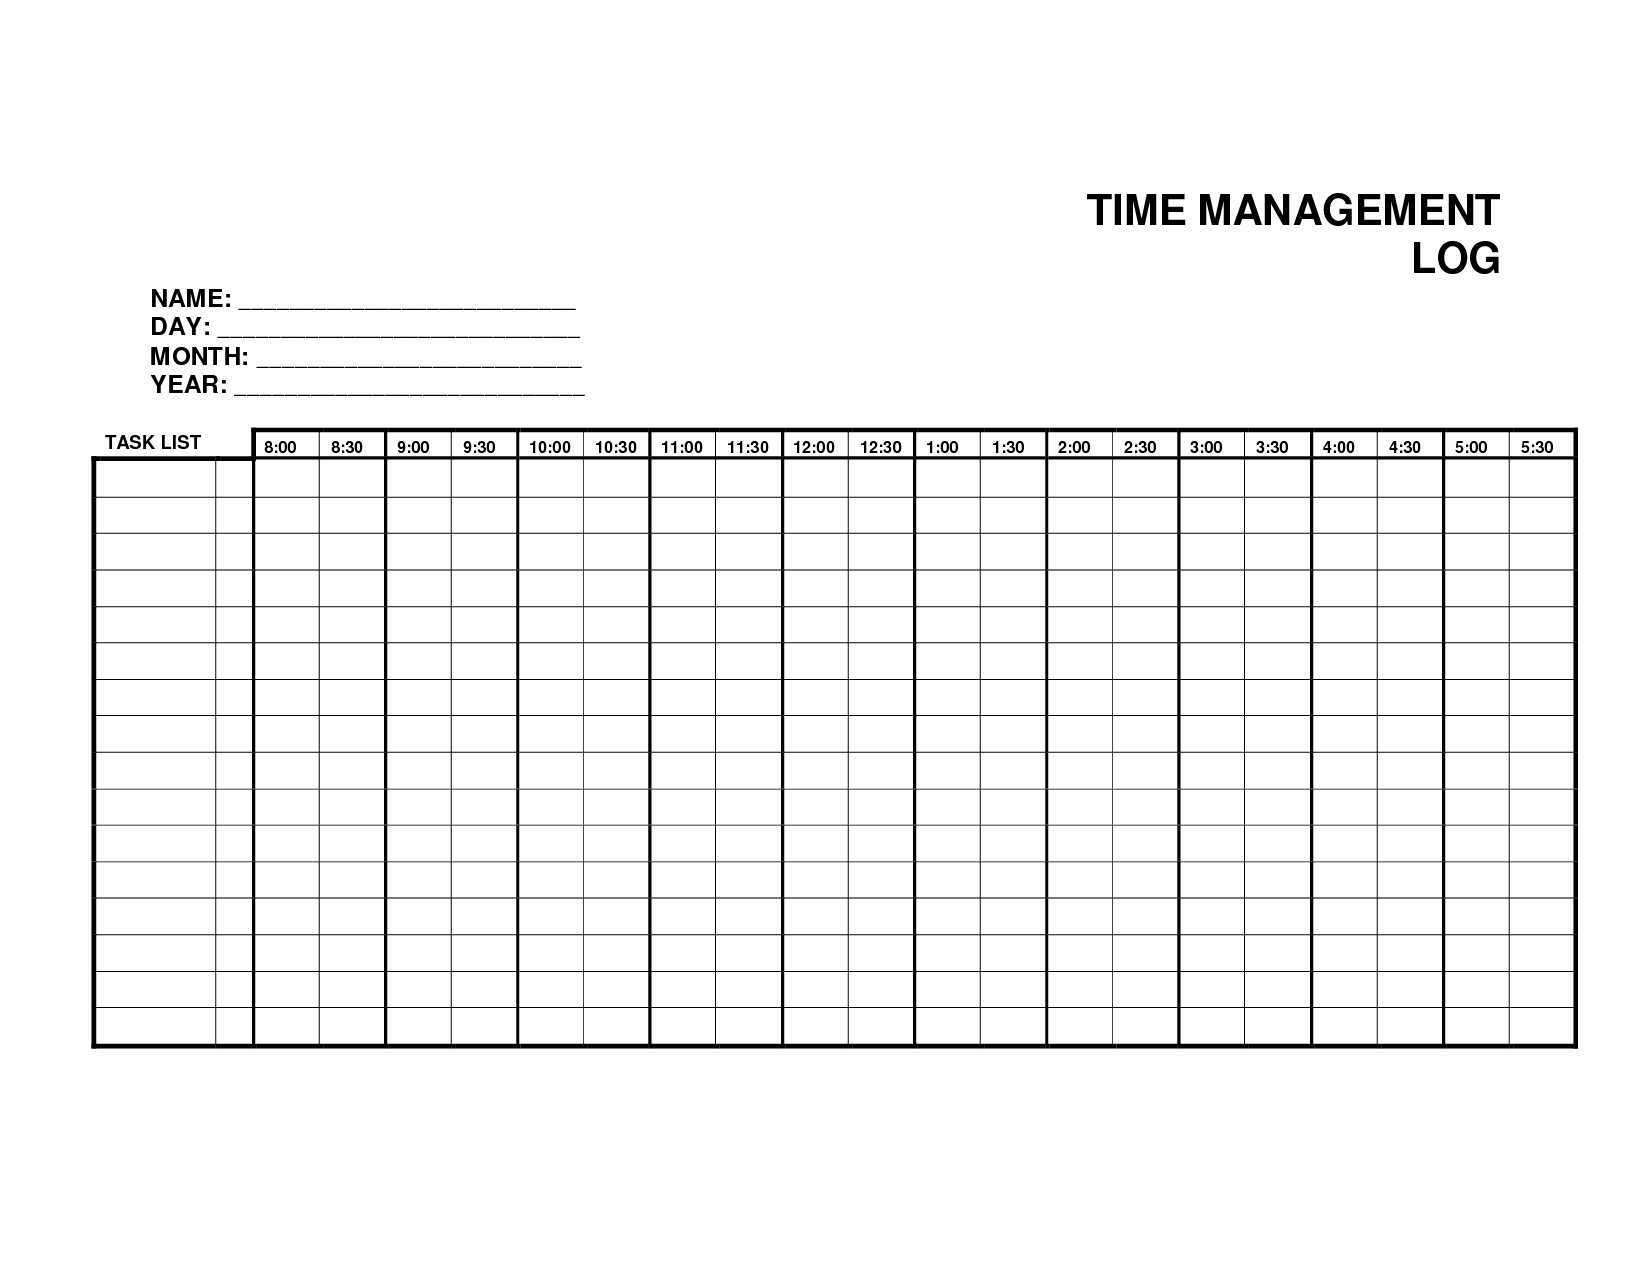 Log Sheet Template Excel Inspirational 5 Log Sheet Templates formats Examples In Word Excel